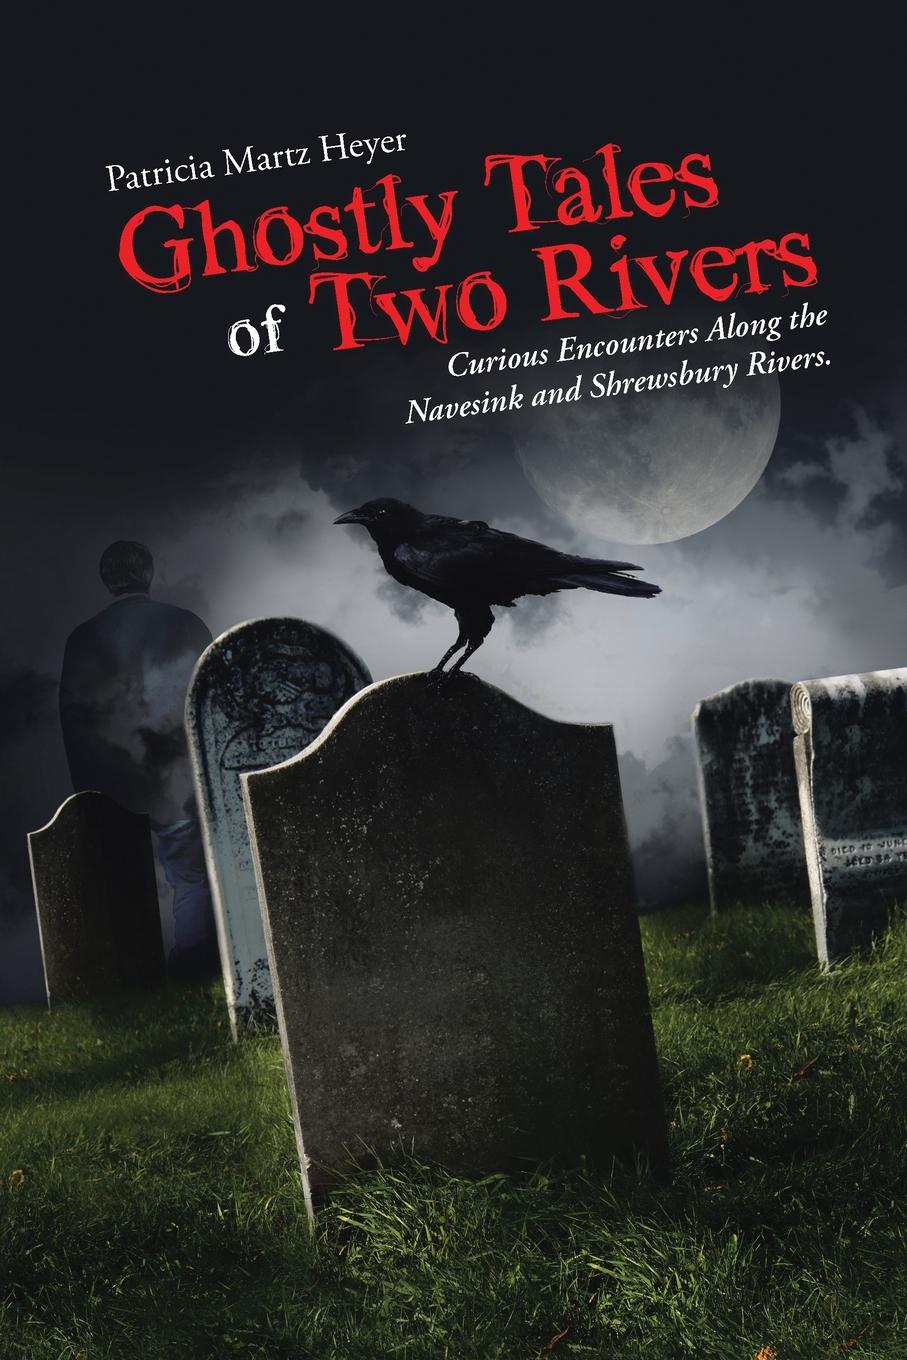 купить Patricia Martz Heyer Ghostly Tales of Two Rivers. Curious Encounters Along the Navesink and Shrewsbury Rivers. по цене 1339 рублей